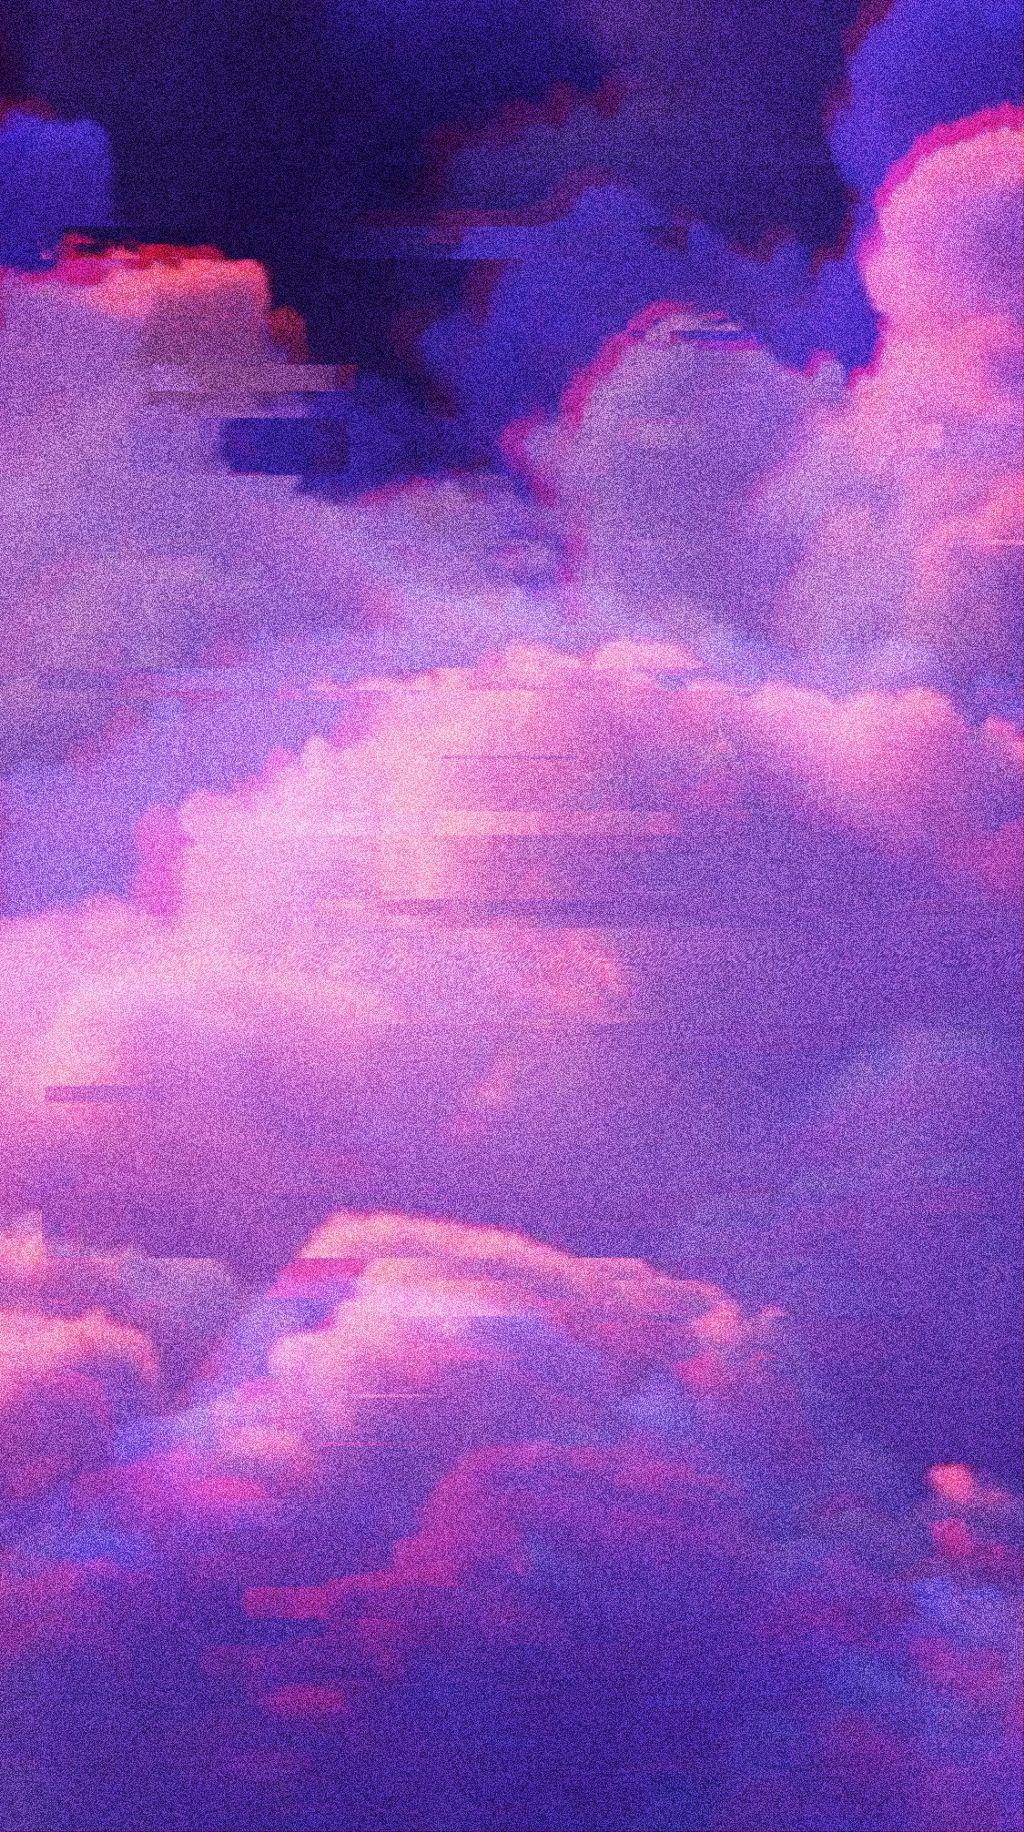 Free download free aesthetic glitch cloud backgrounds